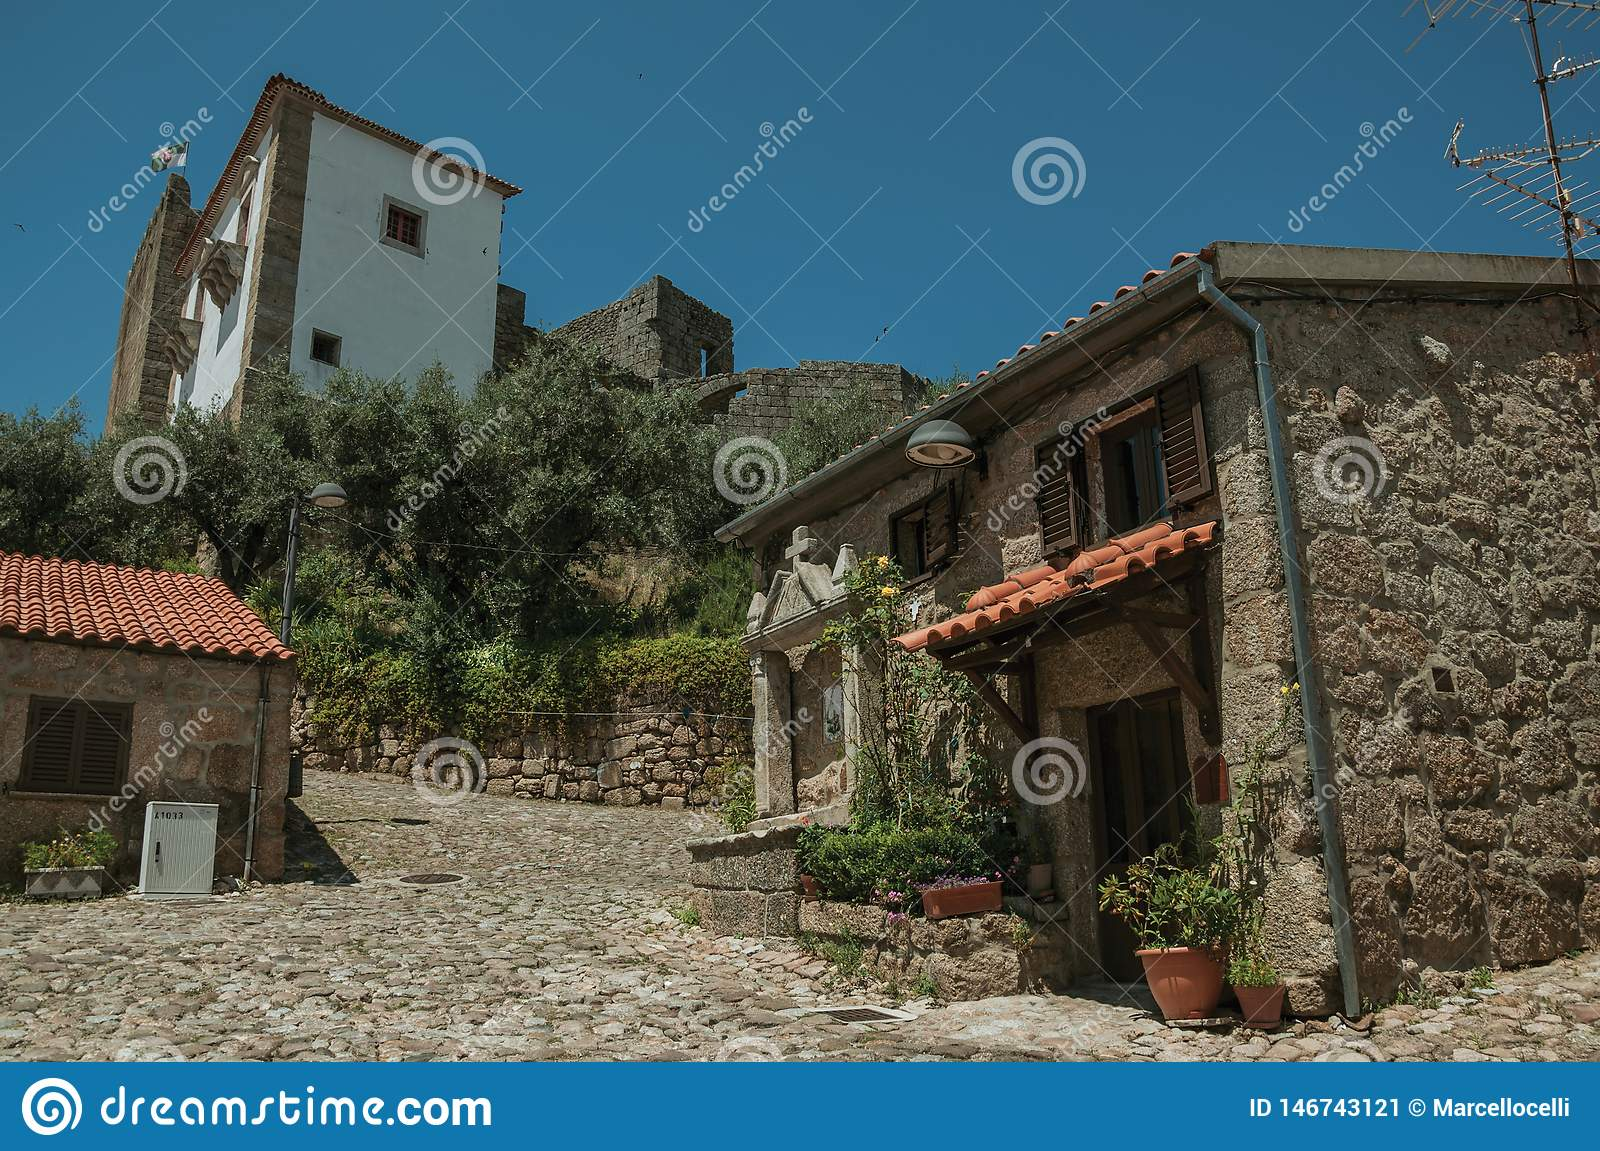 Deserted alley and old small house with stone walls